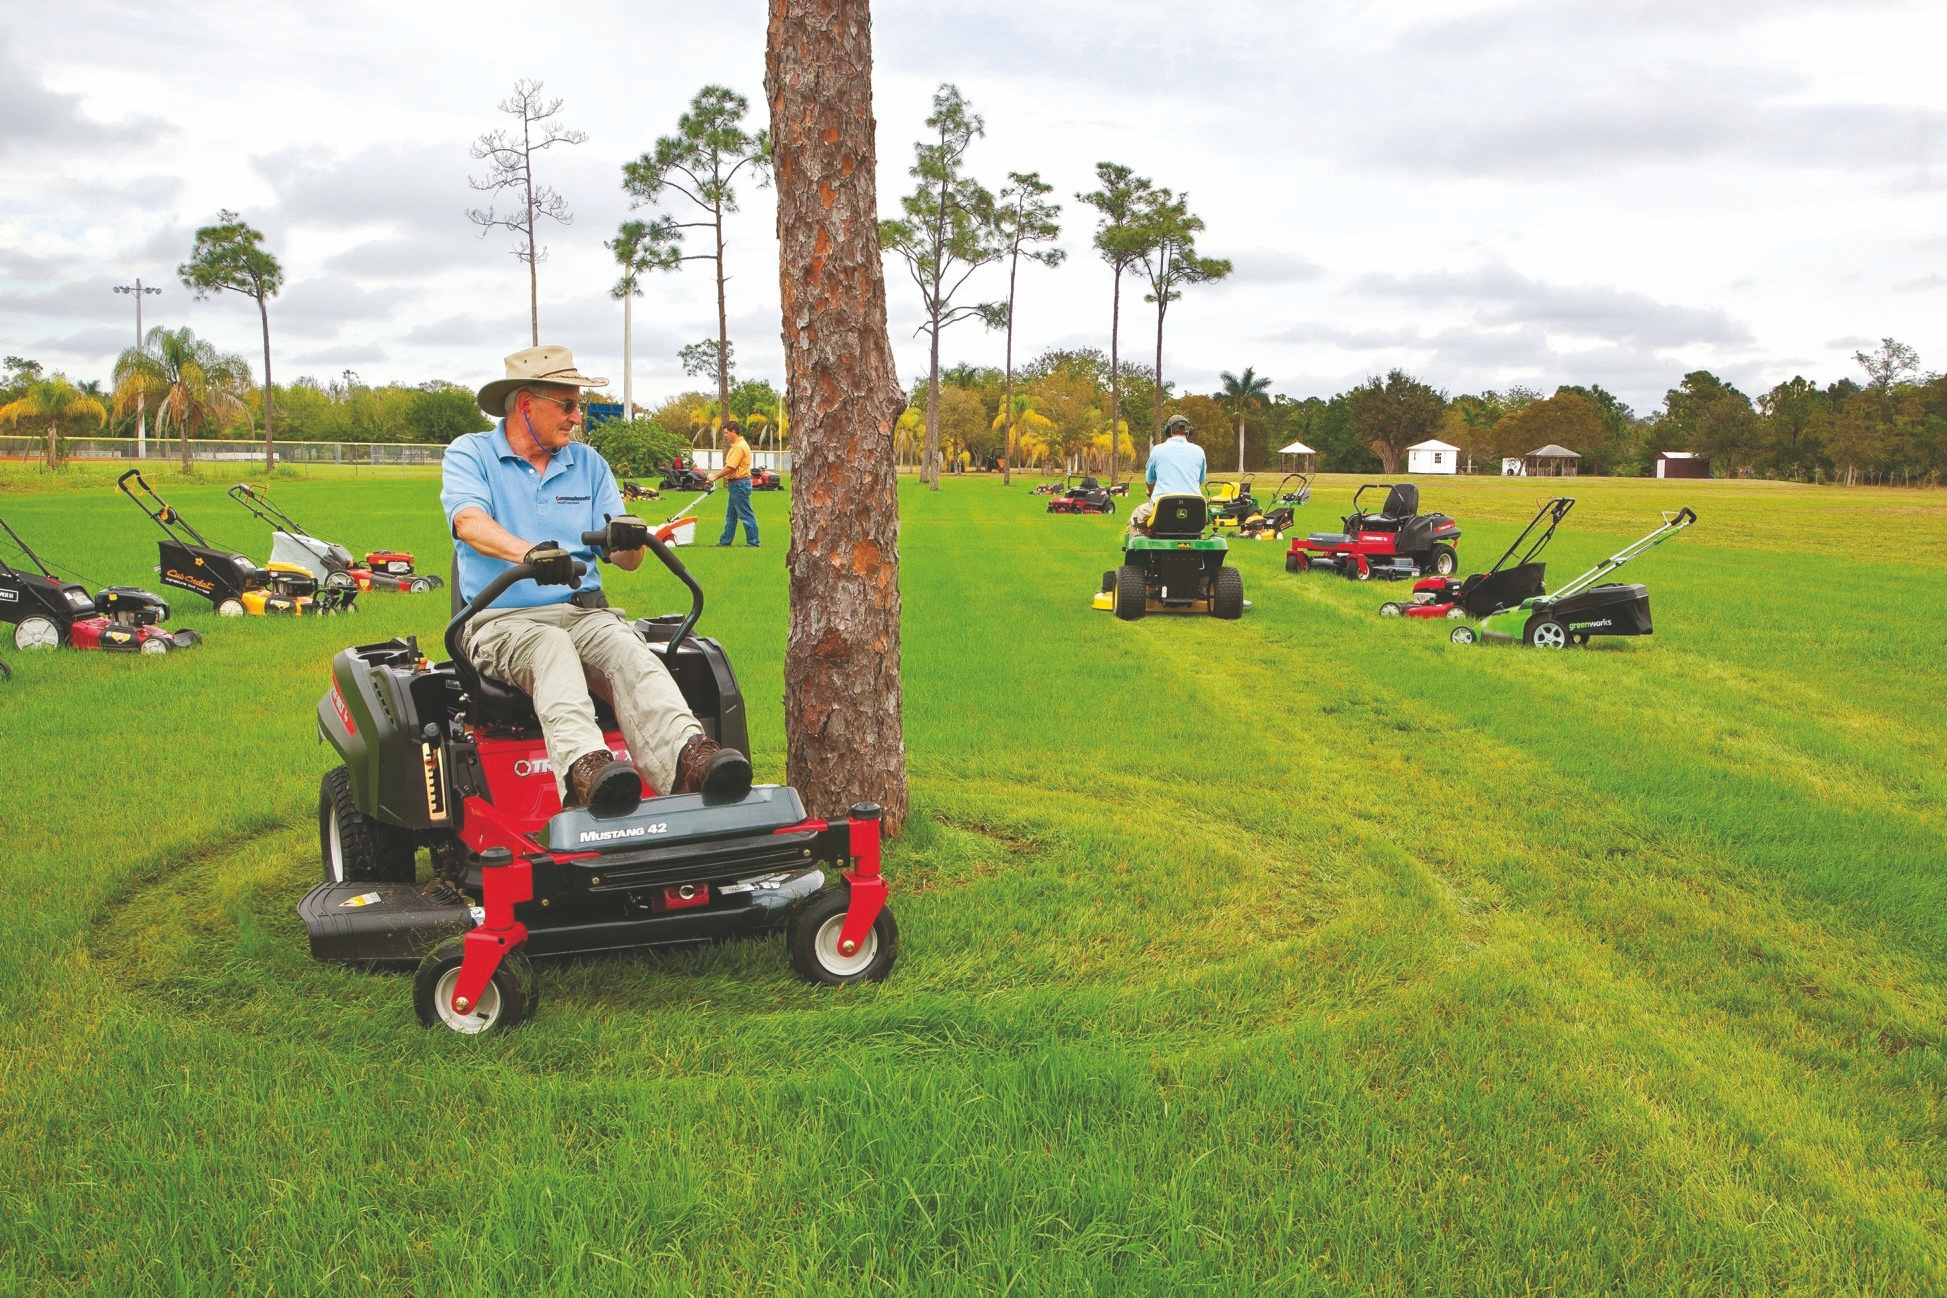 Troy-Bilt's zero-turn-radius mowers earned high marks from Consumer Reports.